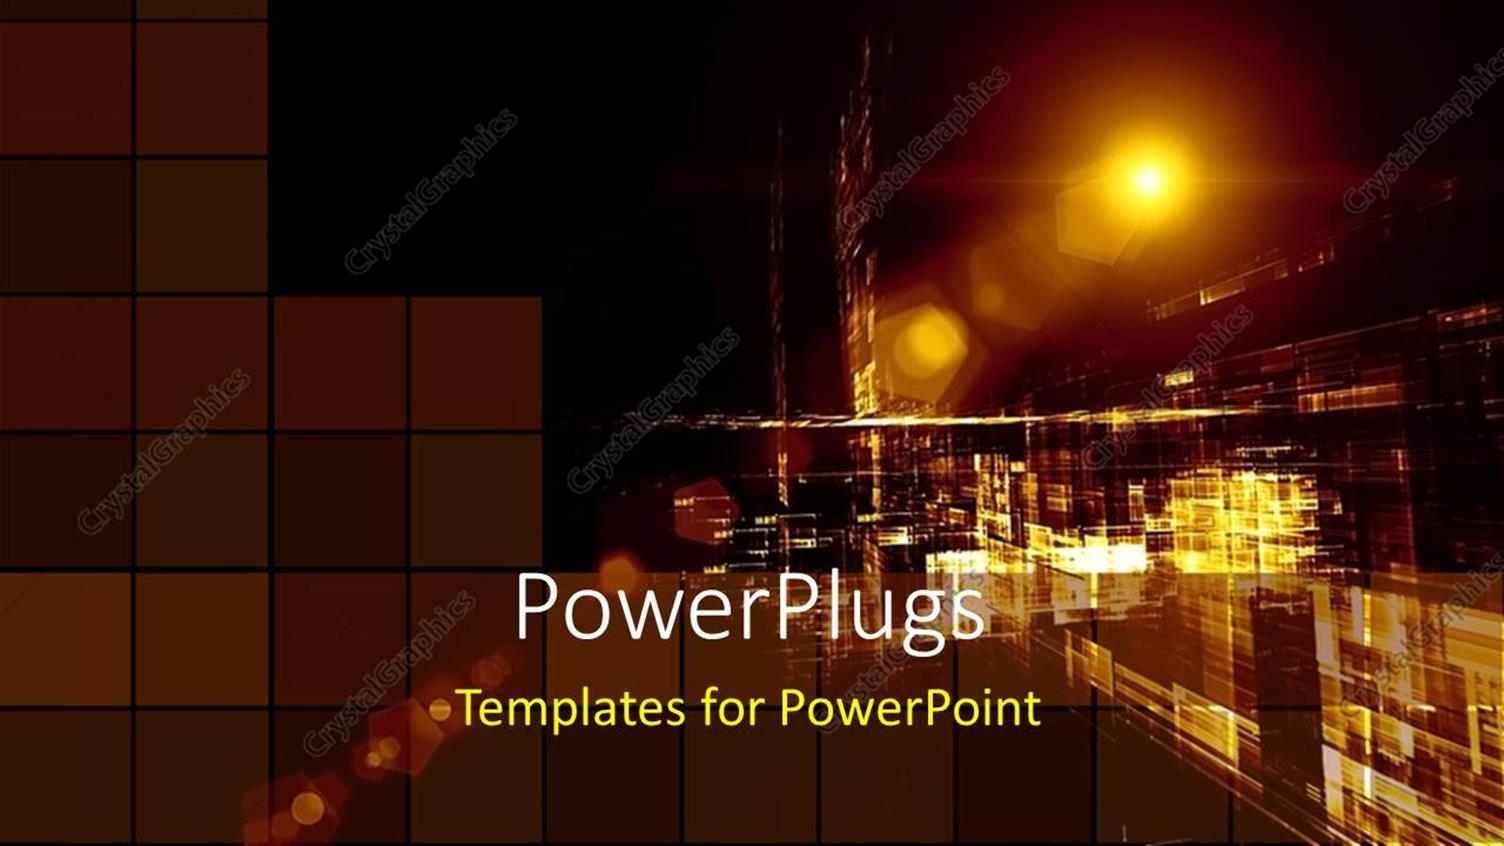 PowerPoint Template Displaying a Distant View of a Street in the Night with Lots of Lights